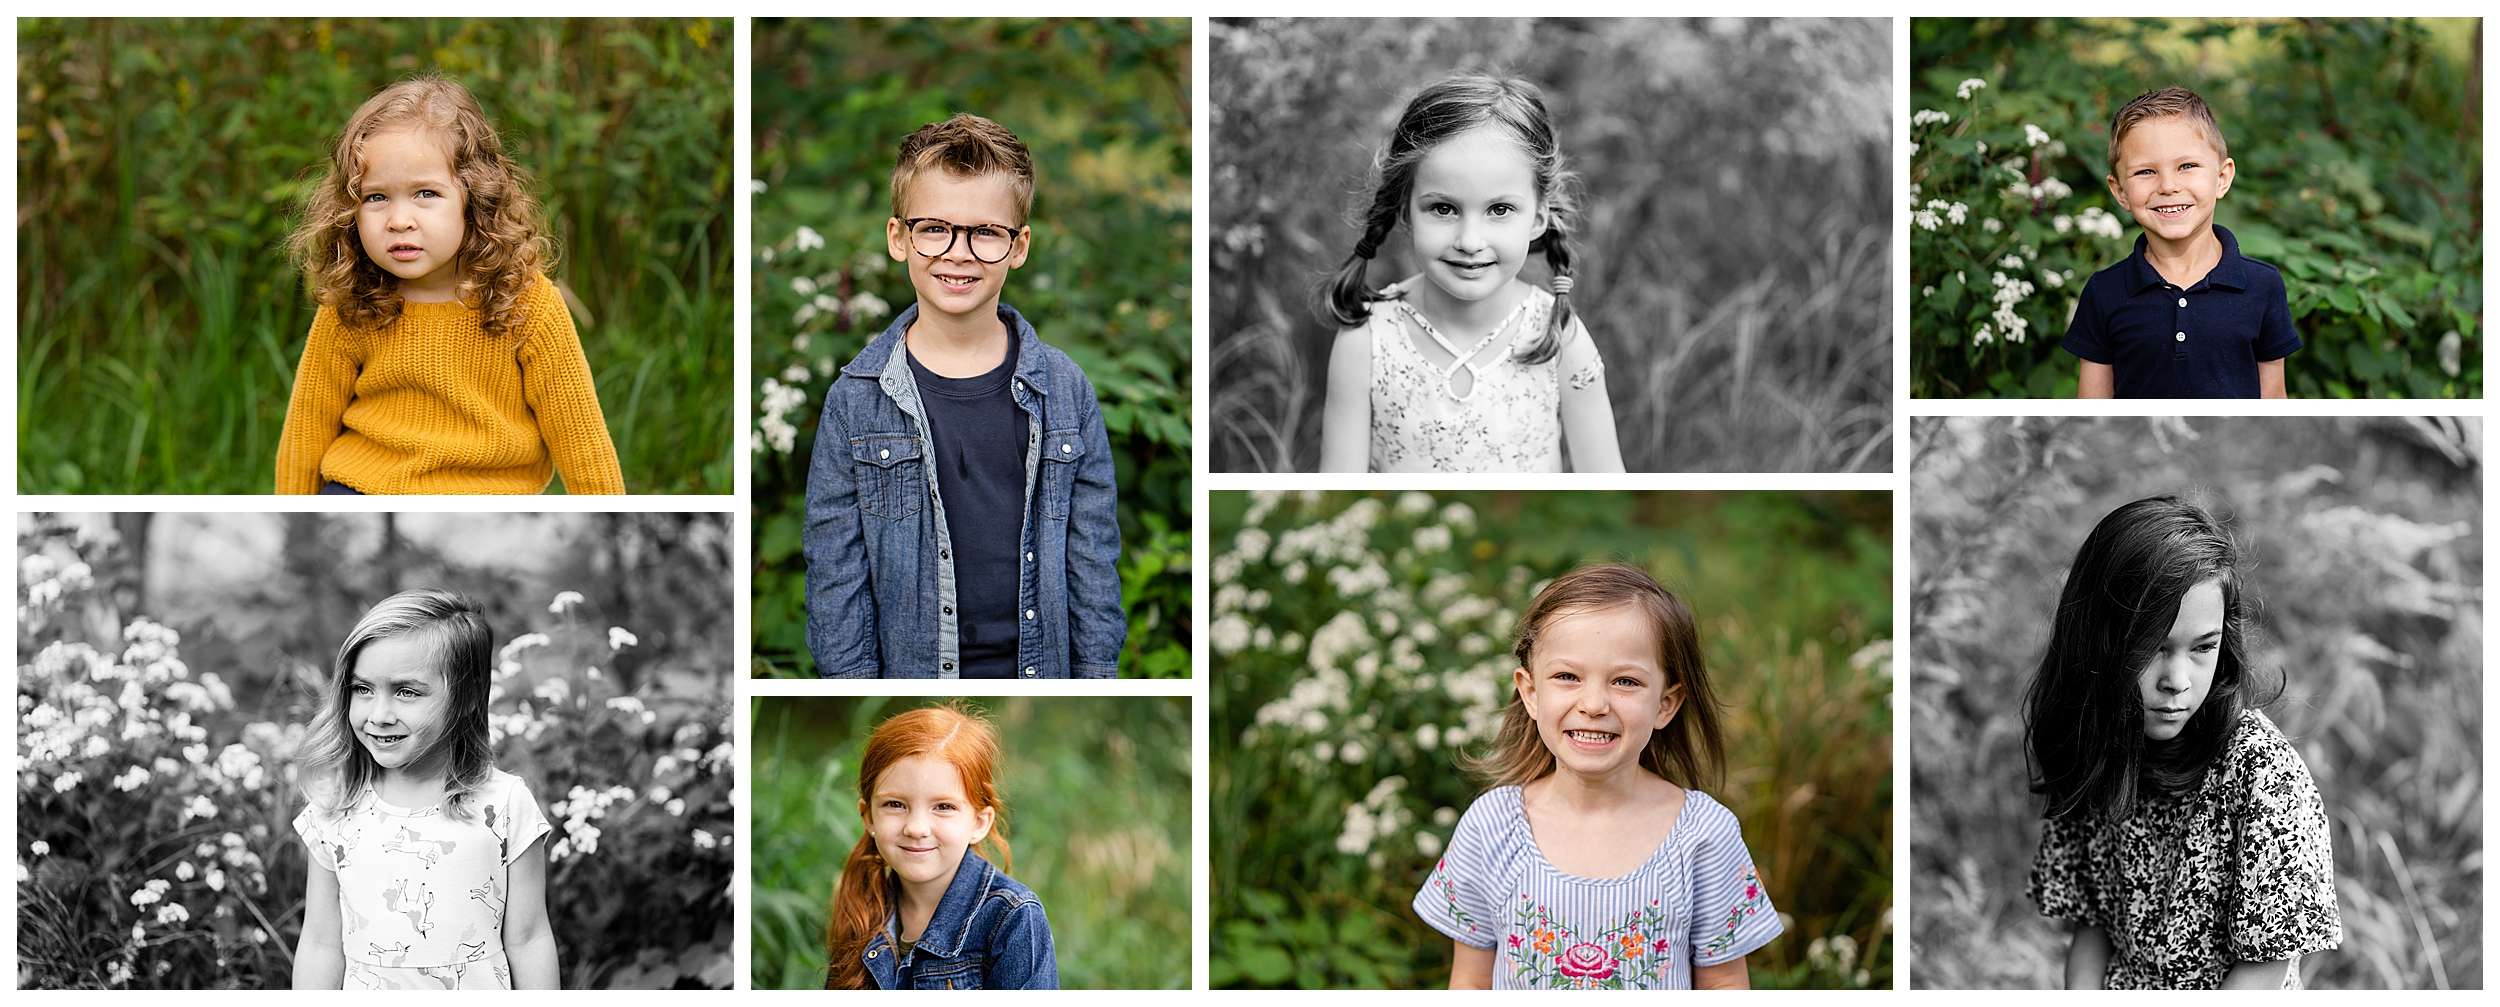 If your school is small and has a shady outdoor space to work in we may be able to offer outdoor school portraits. Please let me know upon inquiring if this is an option you would like.